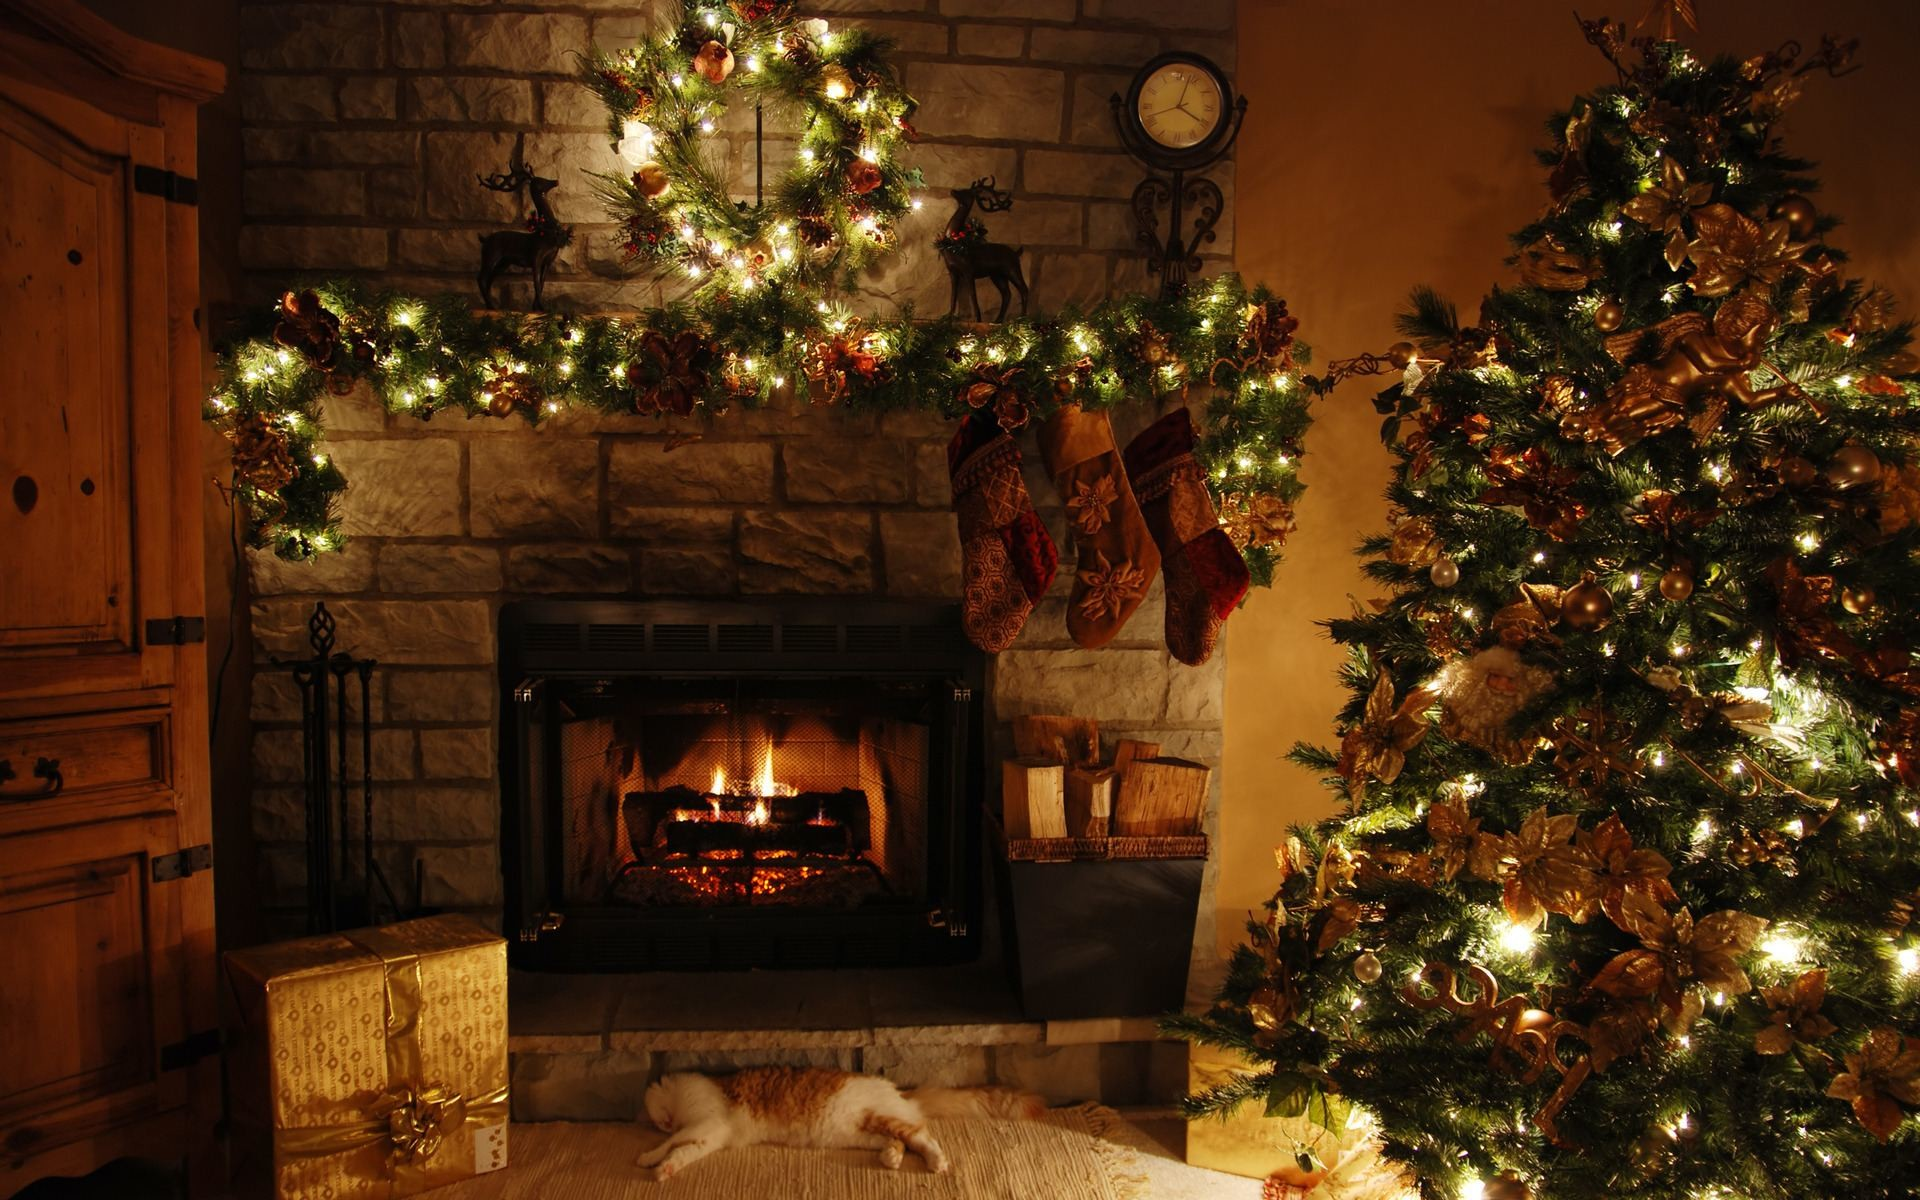 Christmas Fireplace Wallpaper 57 images 1920x1200